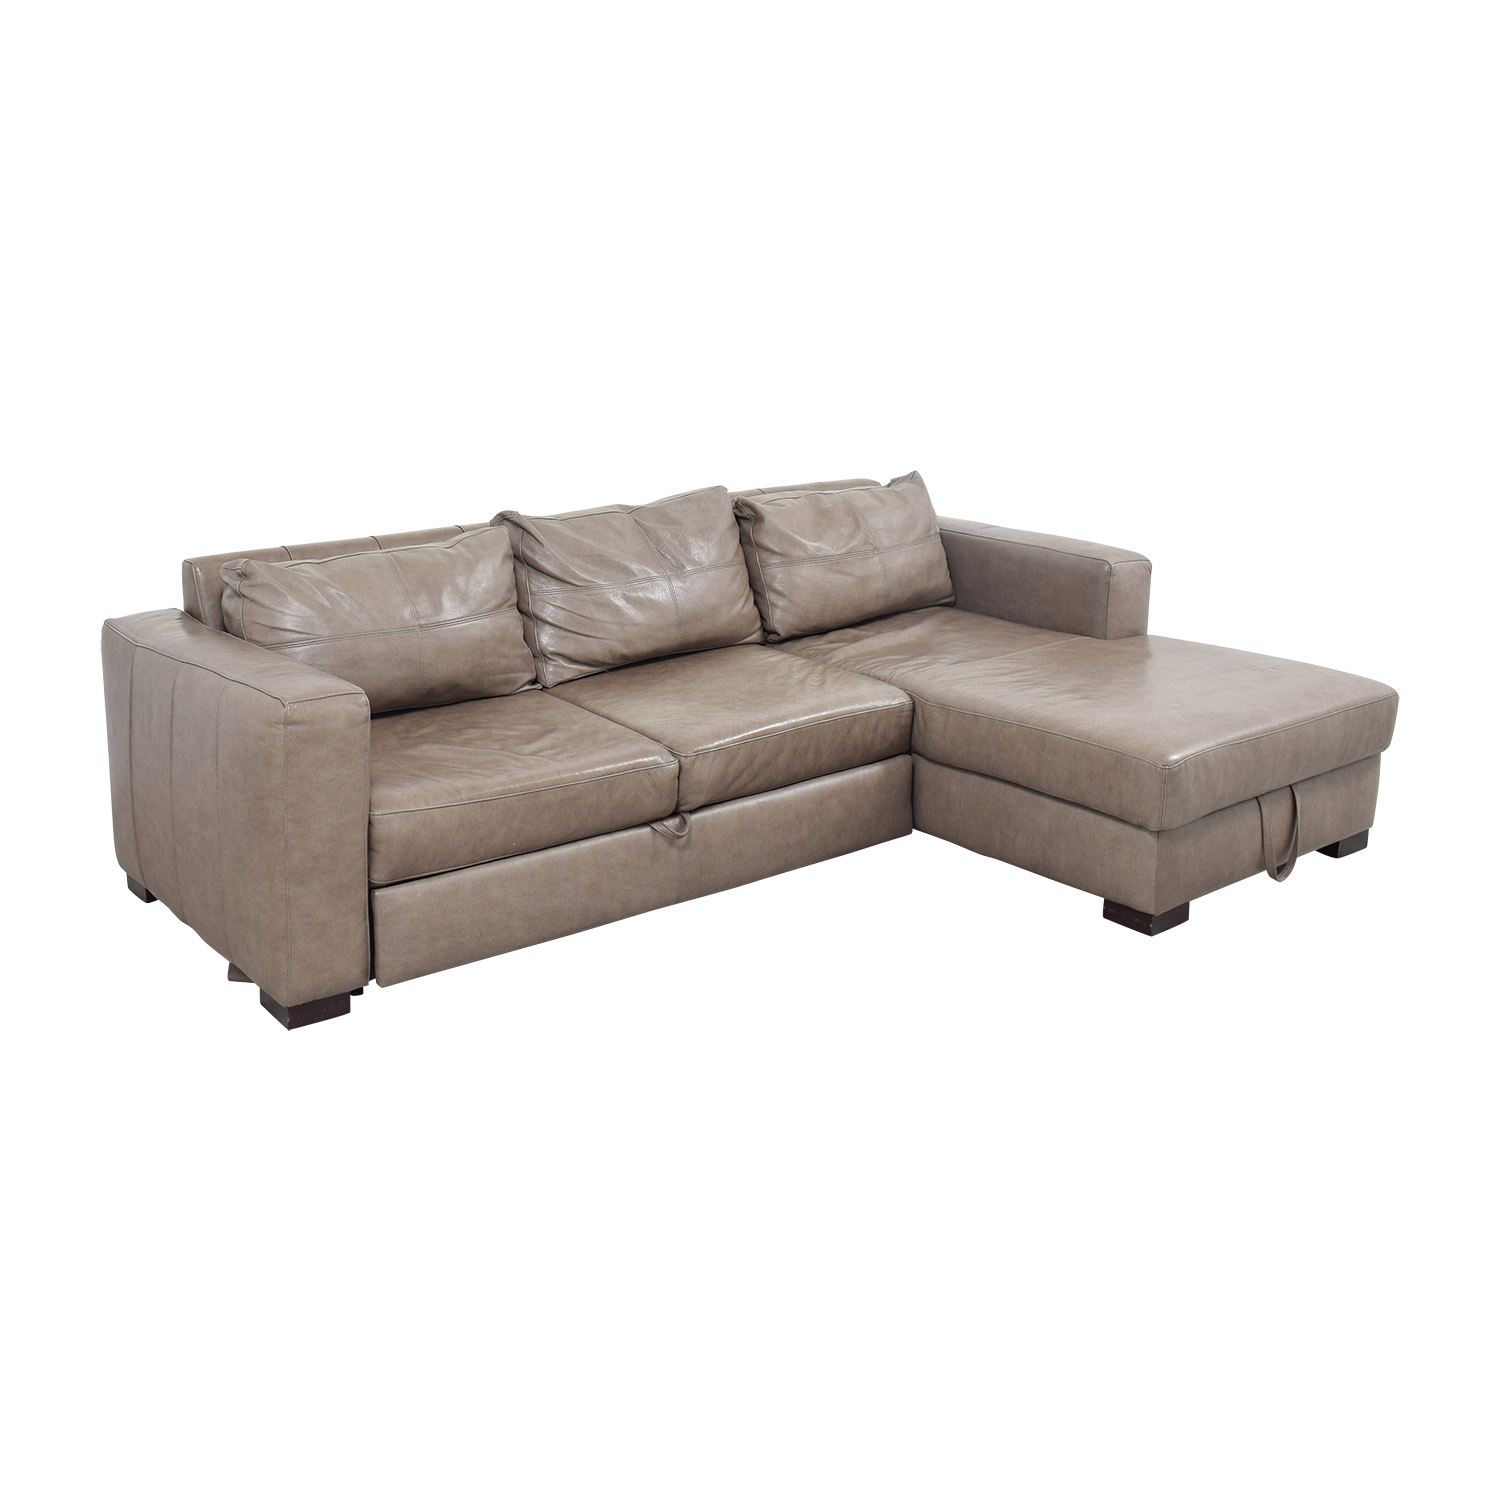 Arhaus Arhaus Grey Soft Leather Convertible Sleeper Sofa dimensions